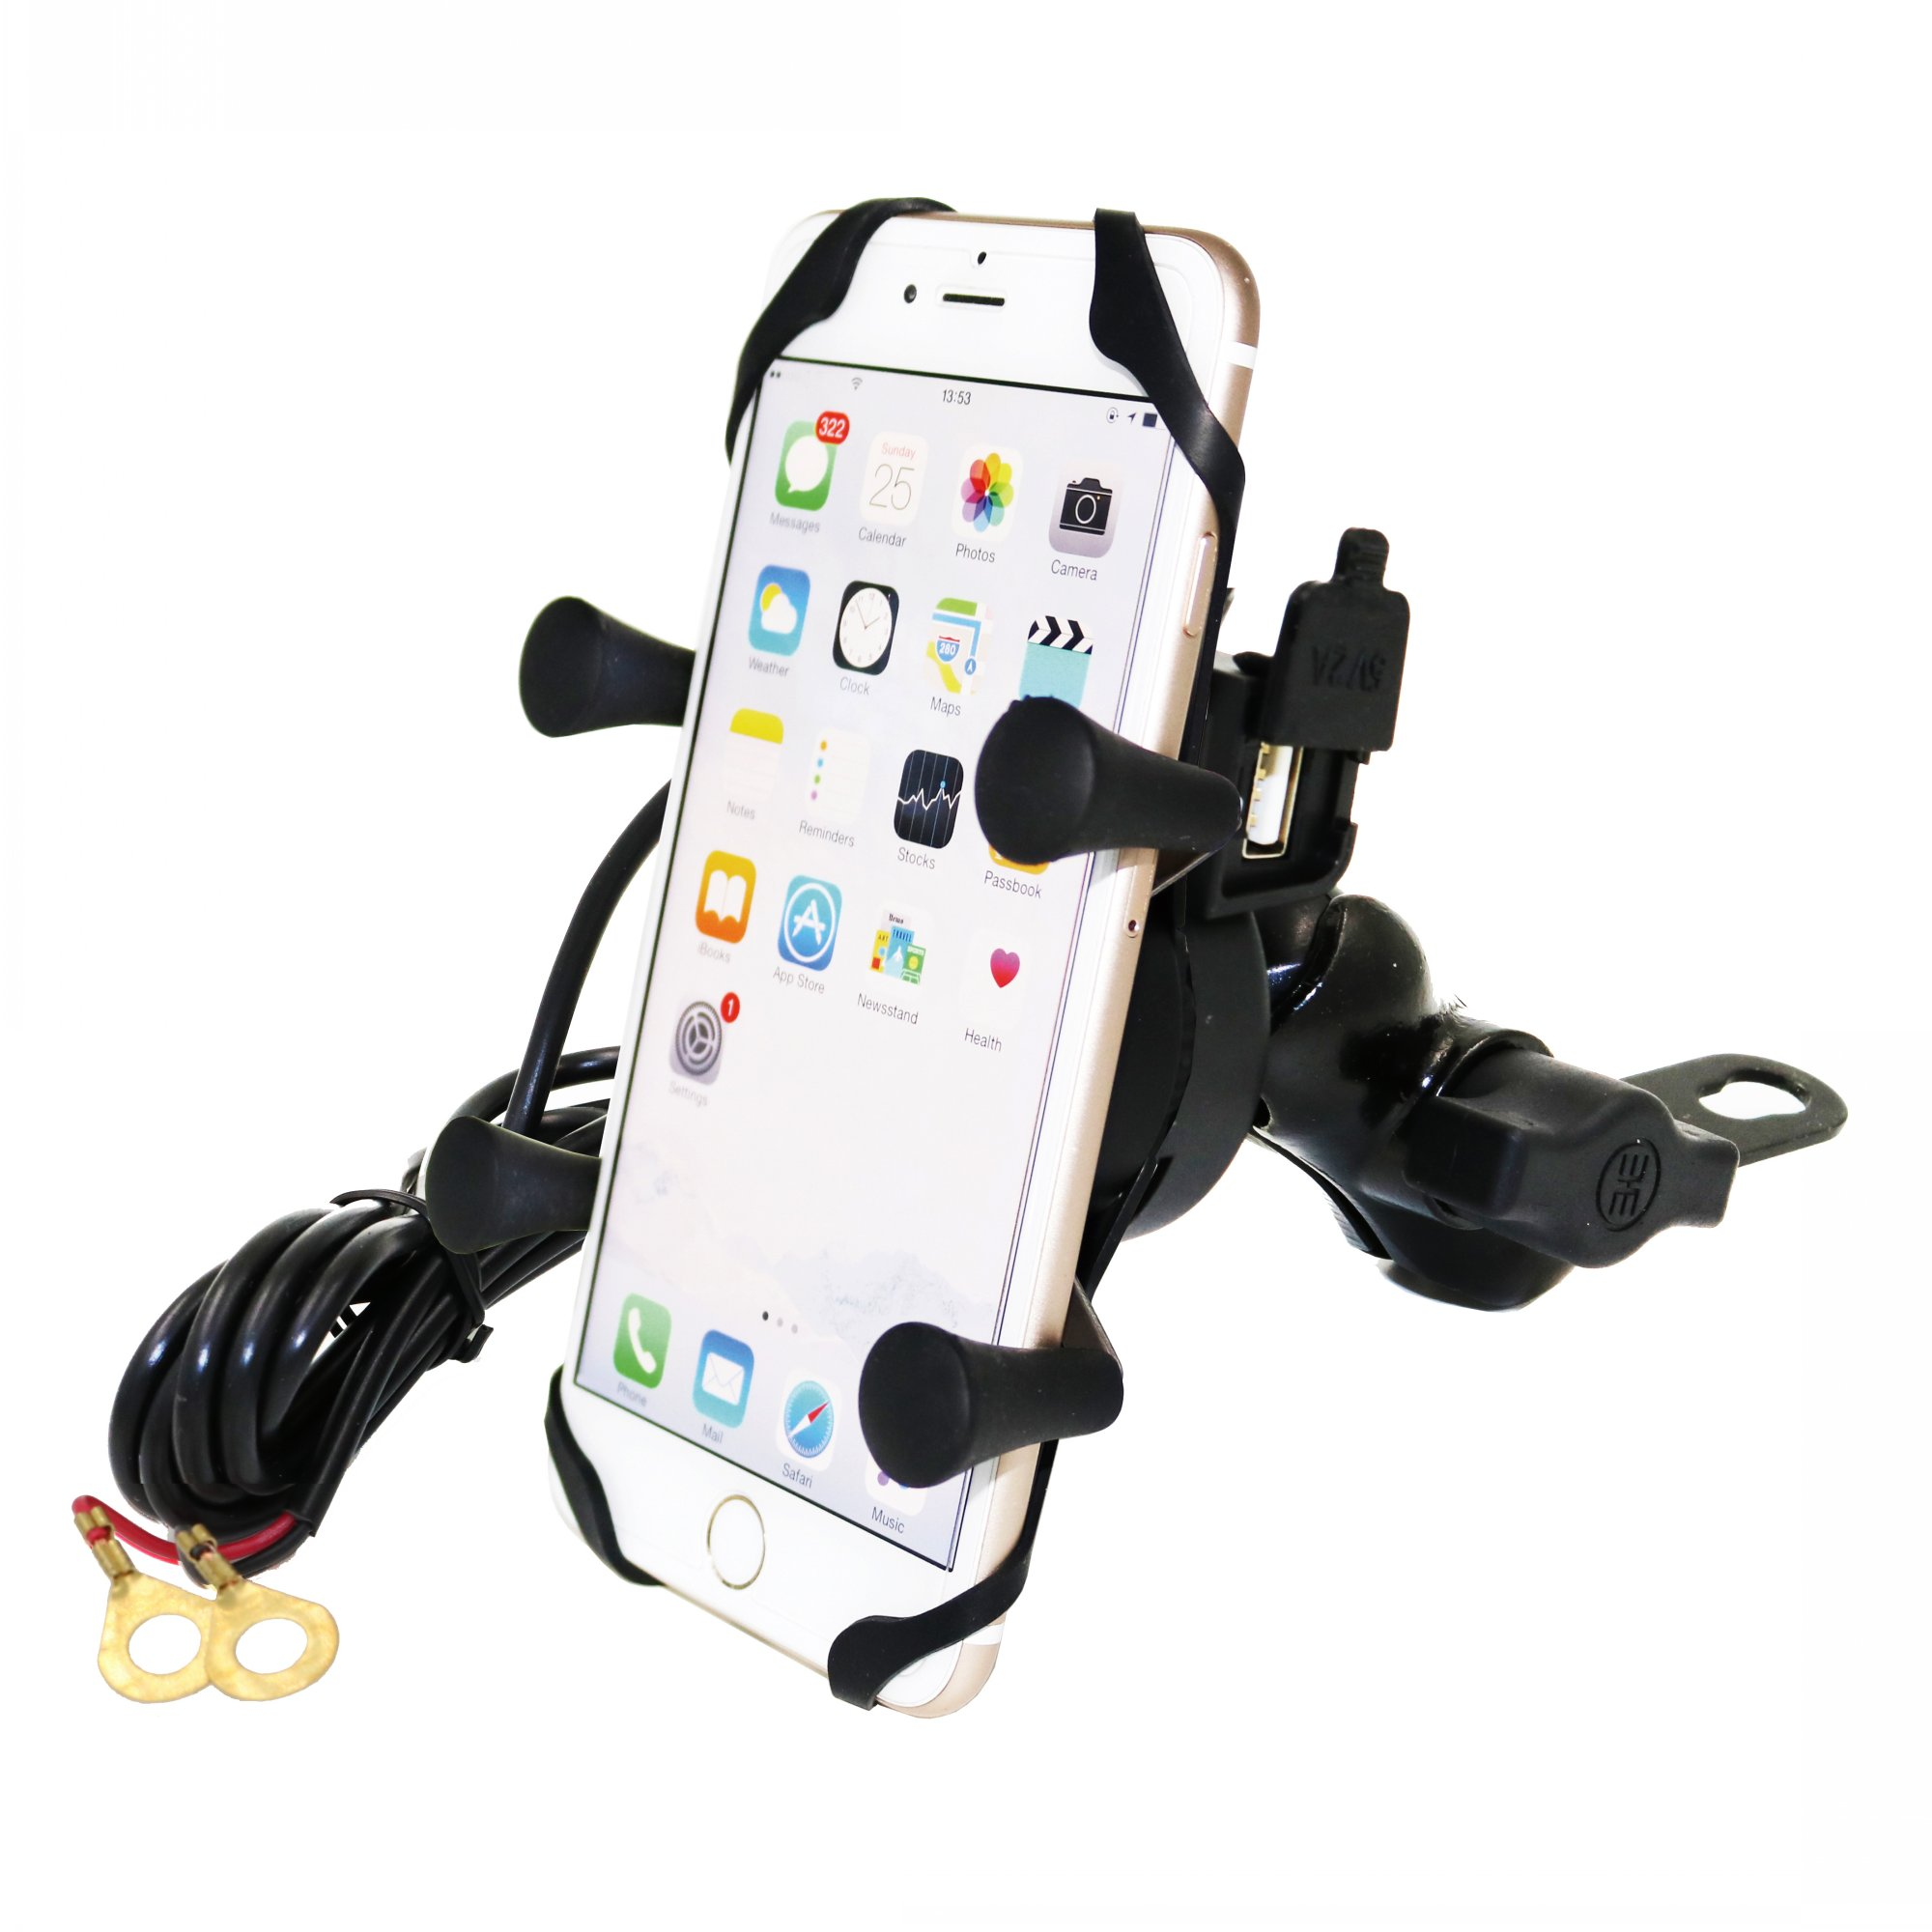 Universal Bike Motorcycle Cell Phone Mount Holder With USB Charger- For any Smartphone, Tablet and GPS charging on the road universal bike bicycle motorcycle helmet mount accessories